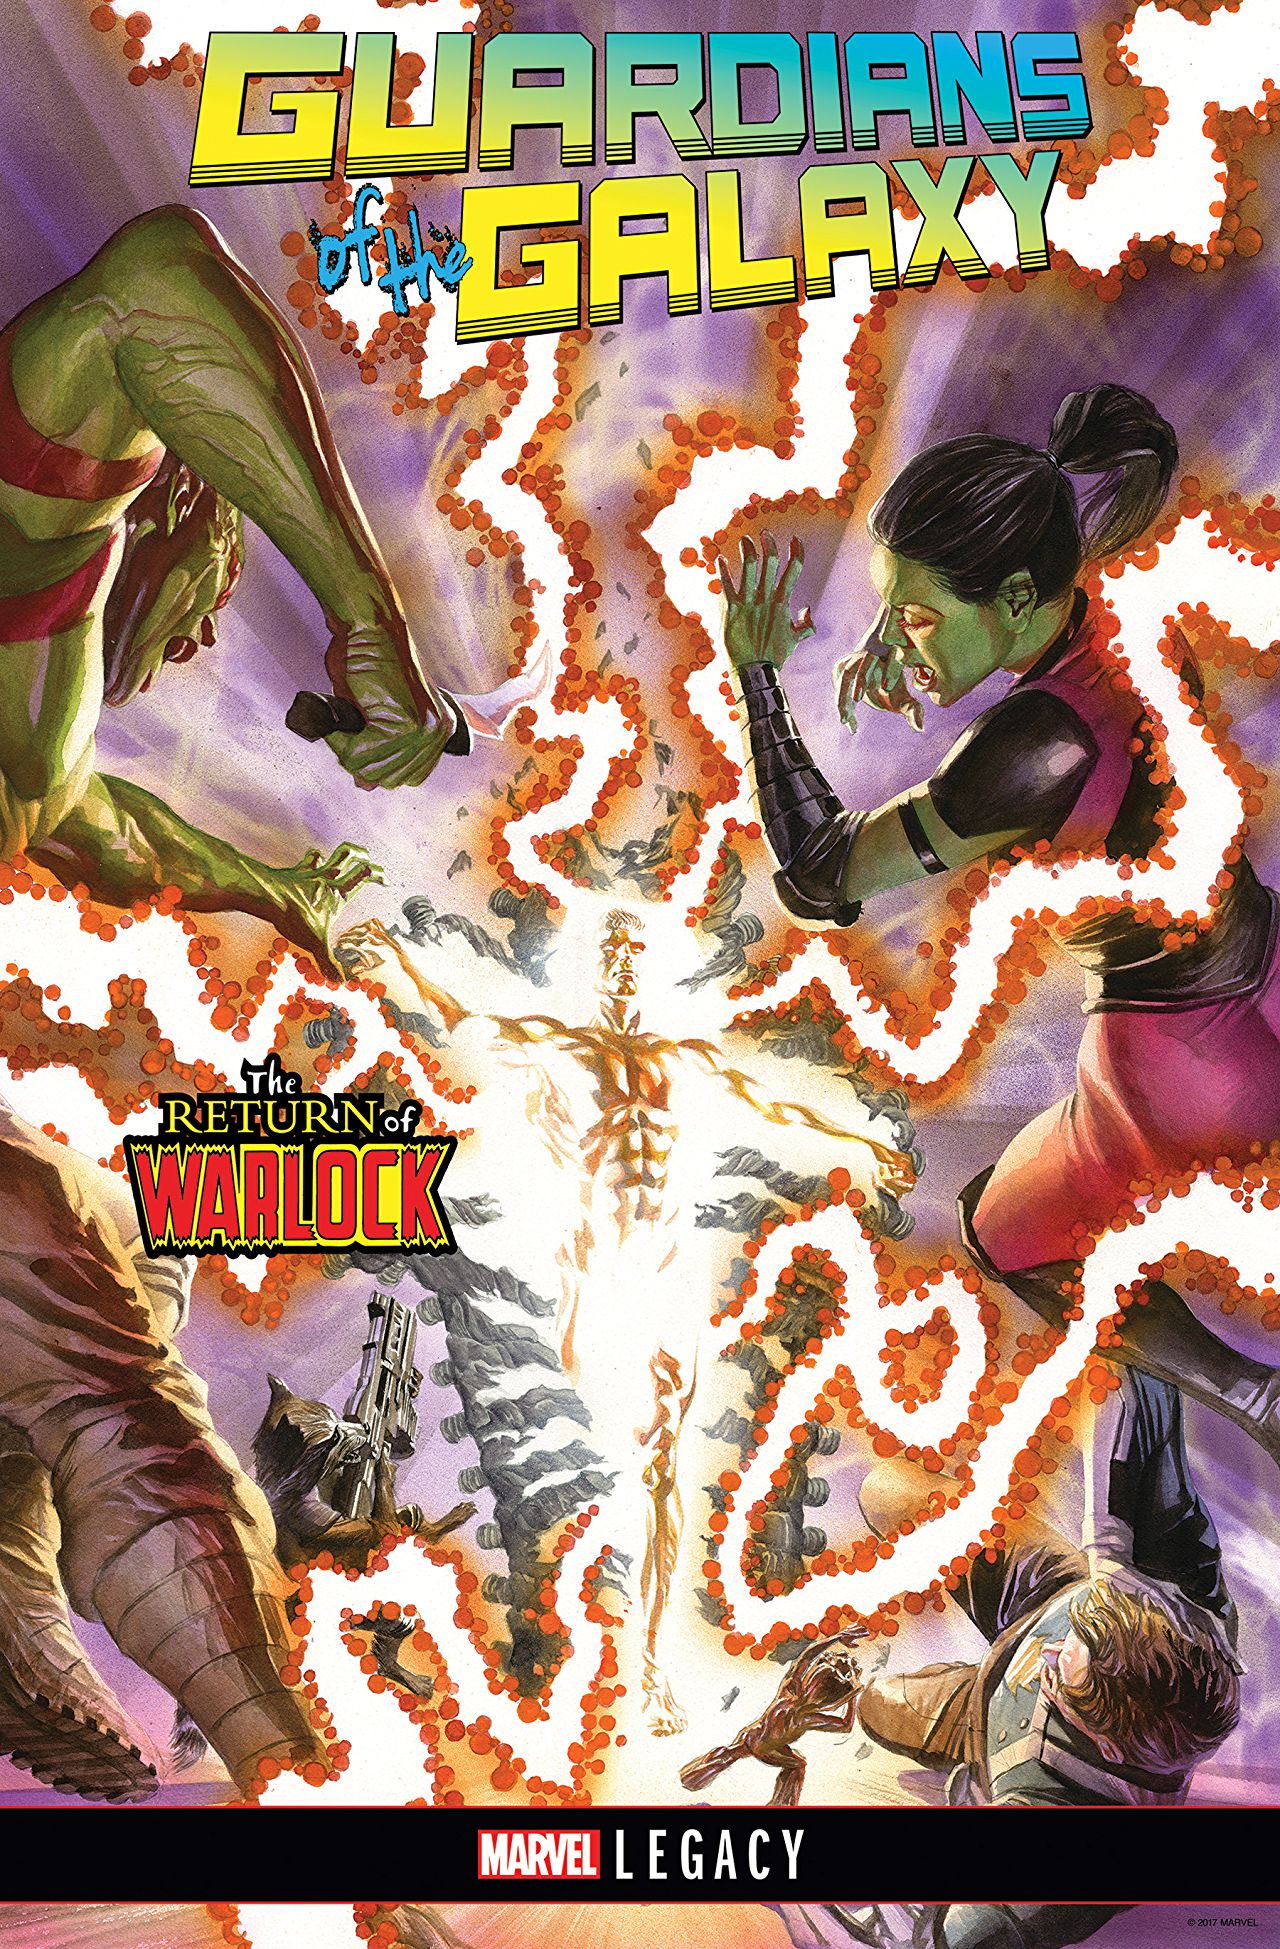 A Guardian of the Galaxy quits in the series' final issue